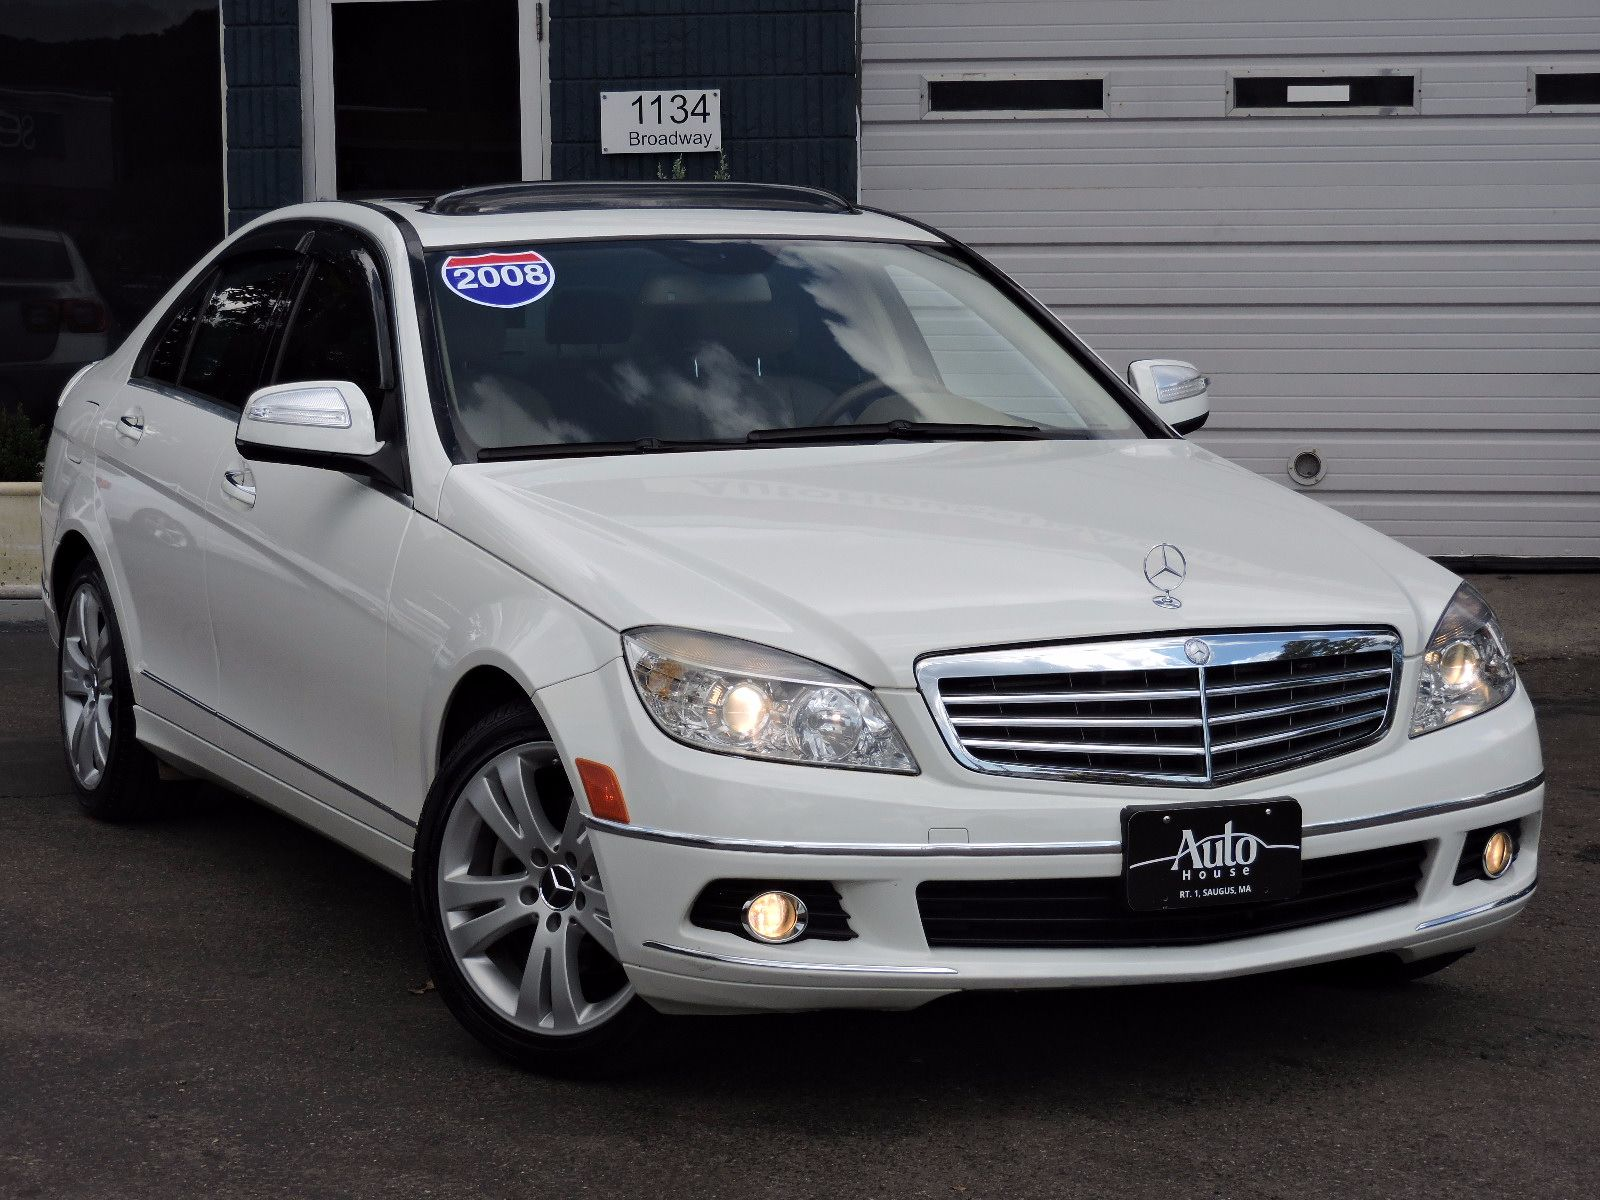 sale c on class australia coupe in caradvice benz mercedes for photos